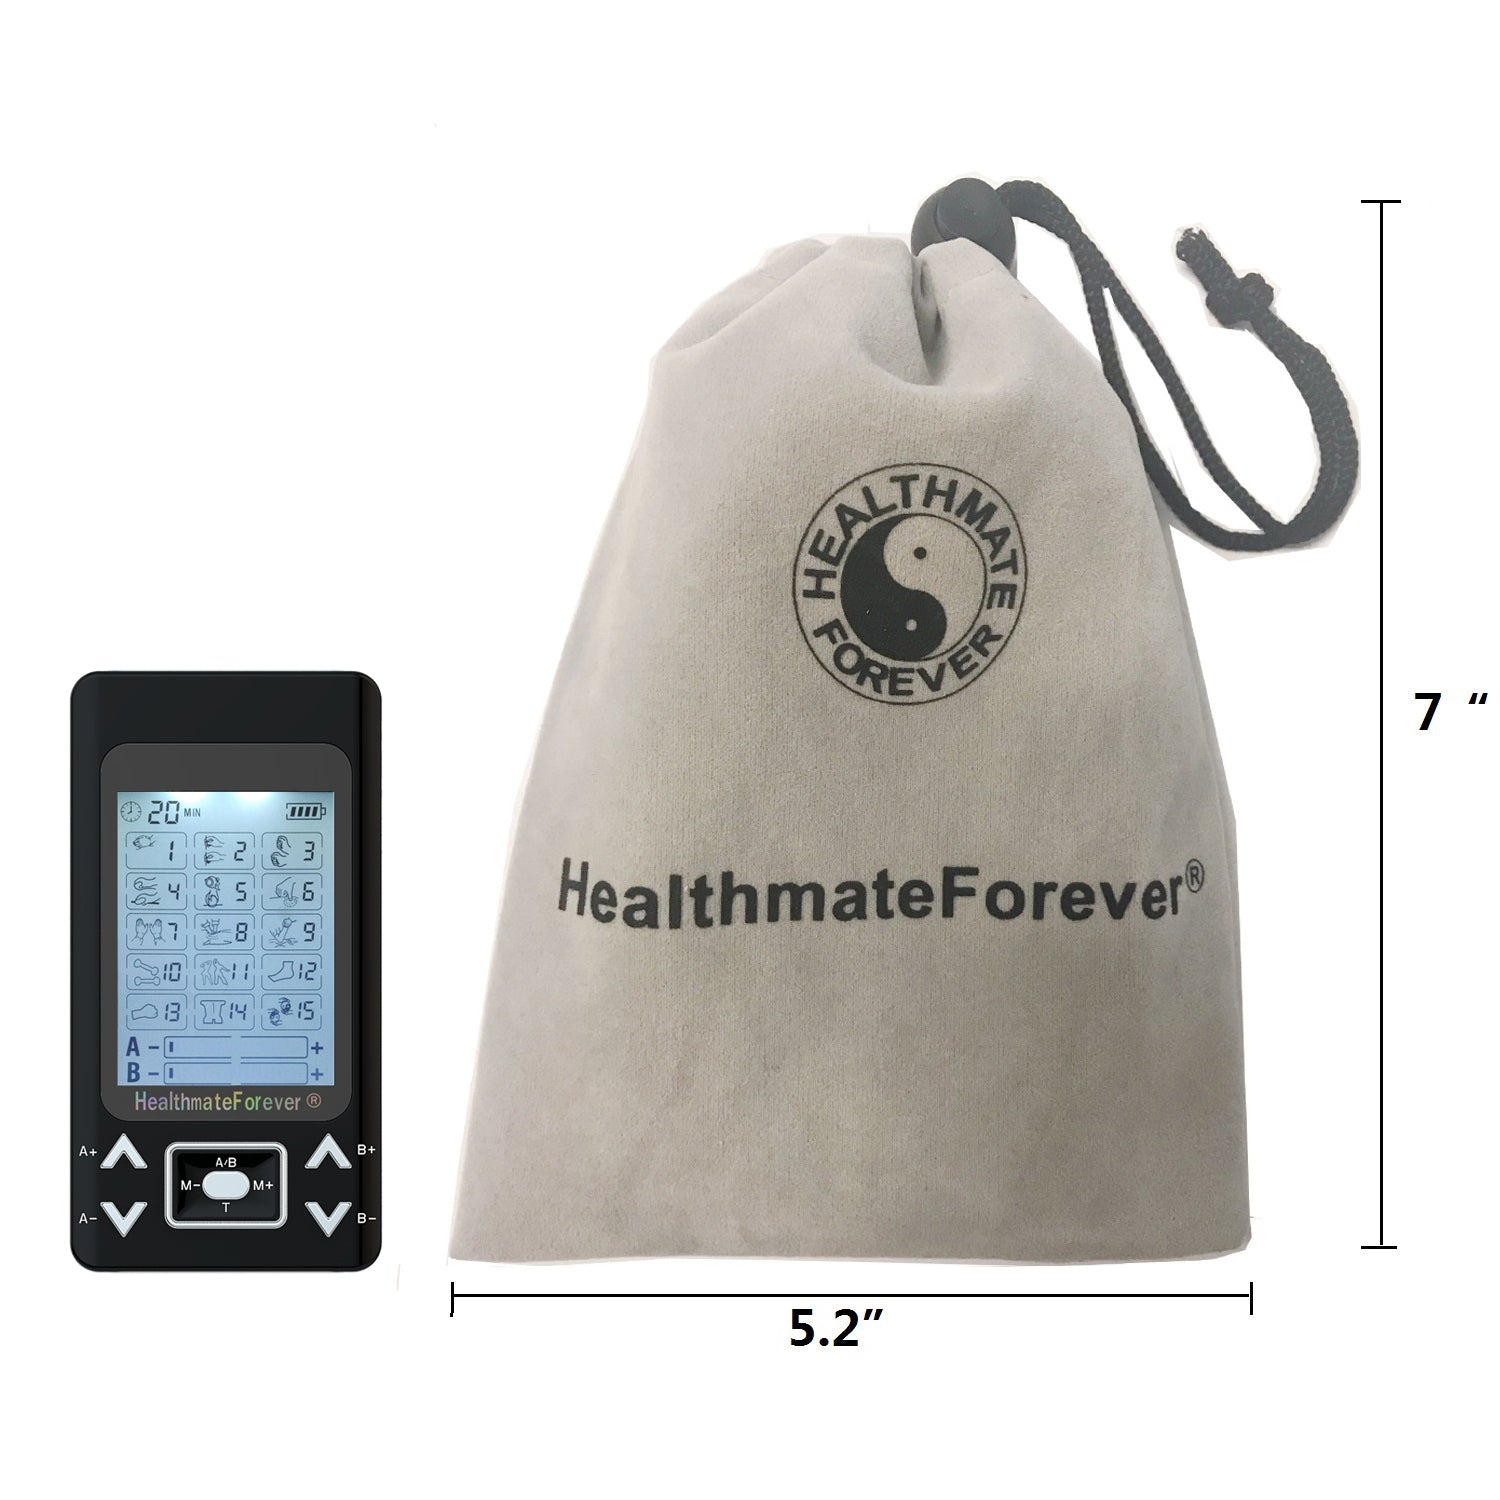 PRO15AB2 Pain Relief TENS Unit & Muscle Stimulator for reconditioning - 2 Year Warranty - HealthmateForever.com